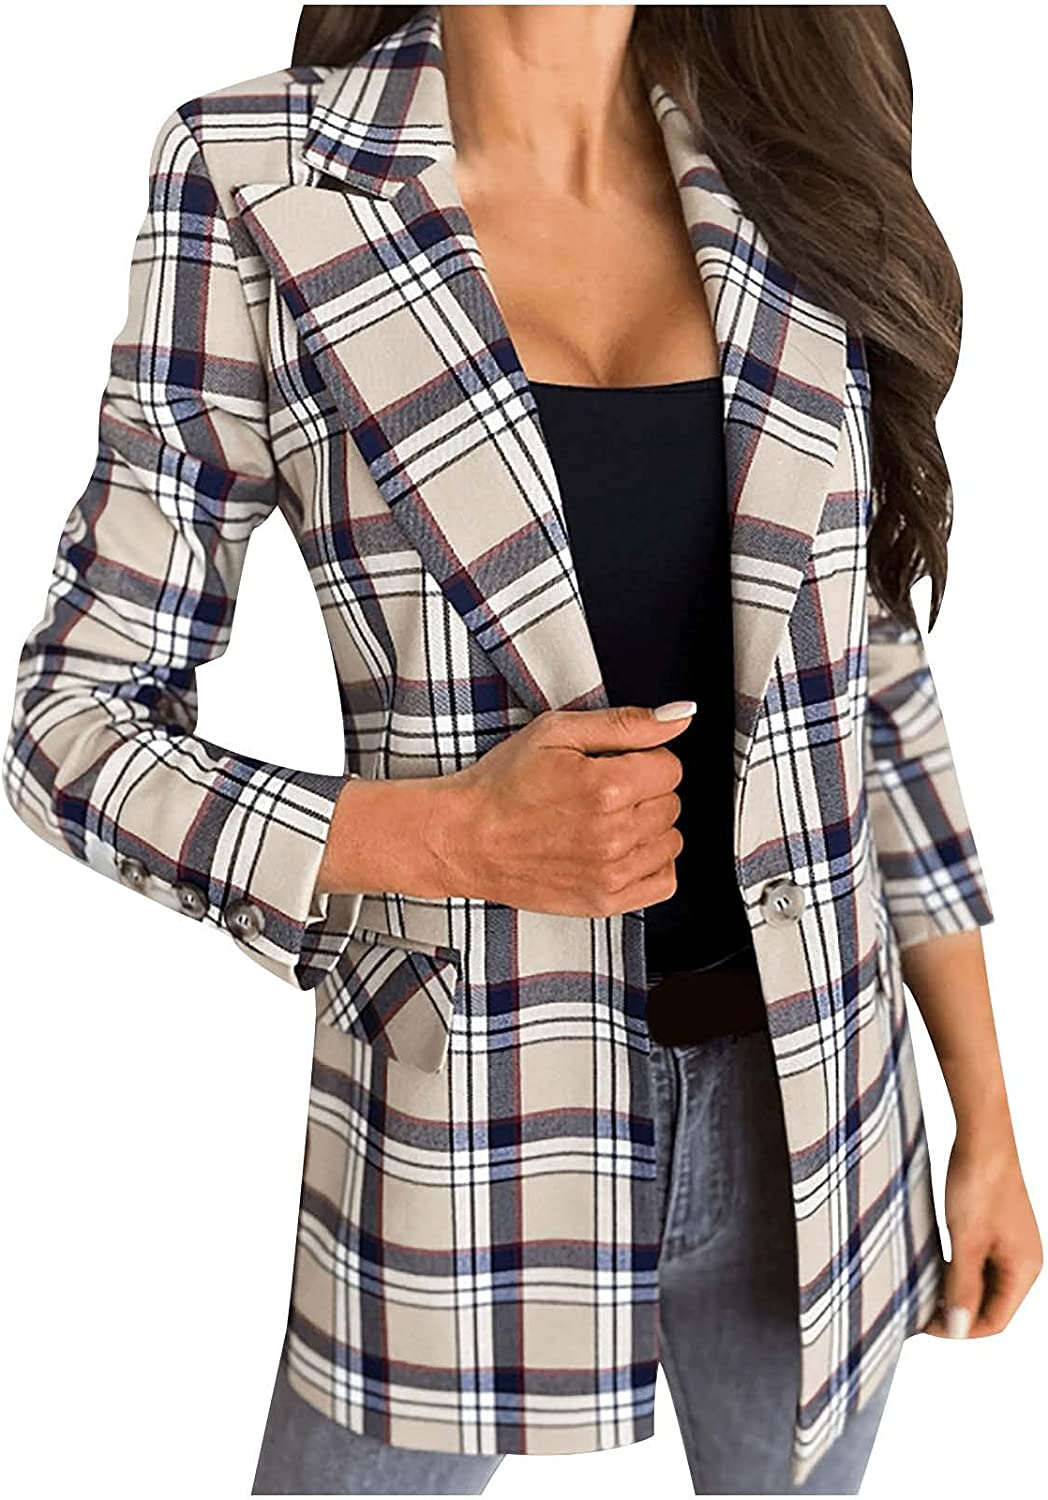 Women's Casual Plaid Open Front Long Sleeve Lapel Button Slim Work Office Blazer Jacket Autumn and Winter Fashion Coat